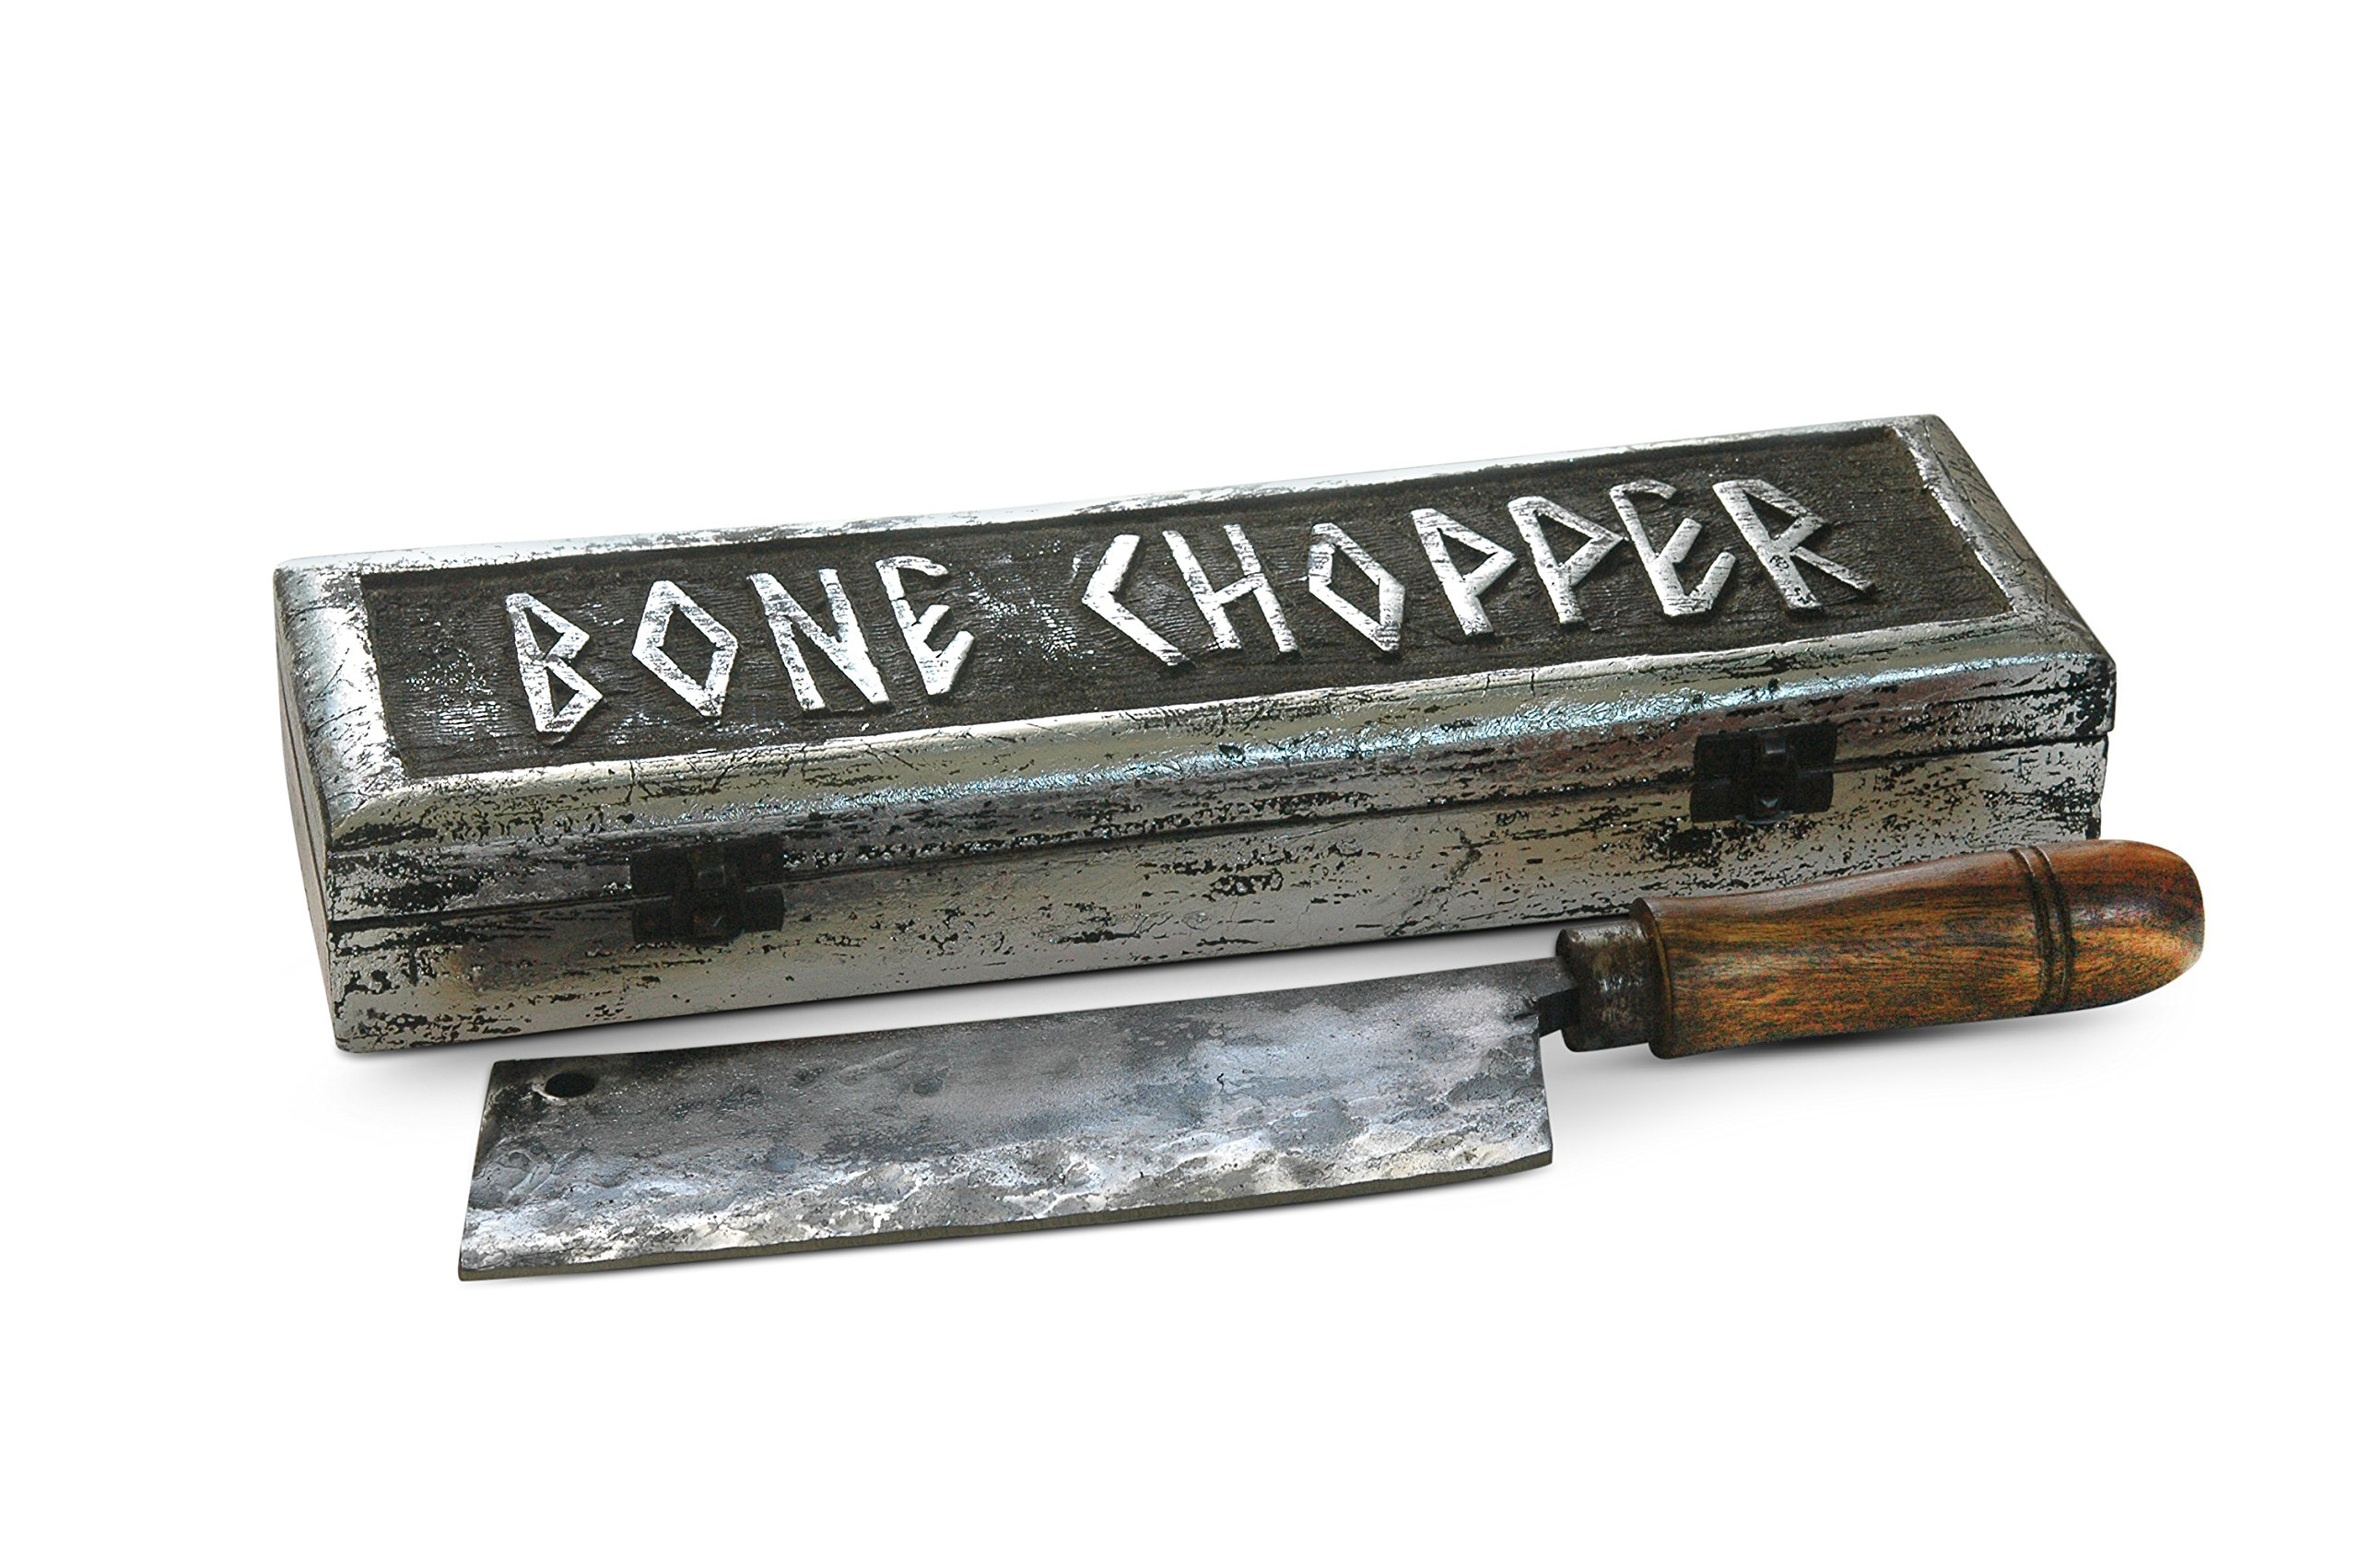 A Tribute to the Art of Blacksmithing - Artisan handmade heavy duty blade barbecue bone chopper to process pig, sheep and goat, meat cleaver, pizza cutter. Works like an axe.